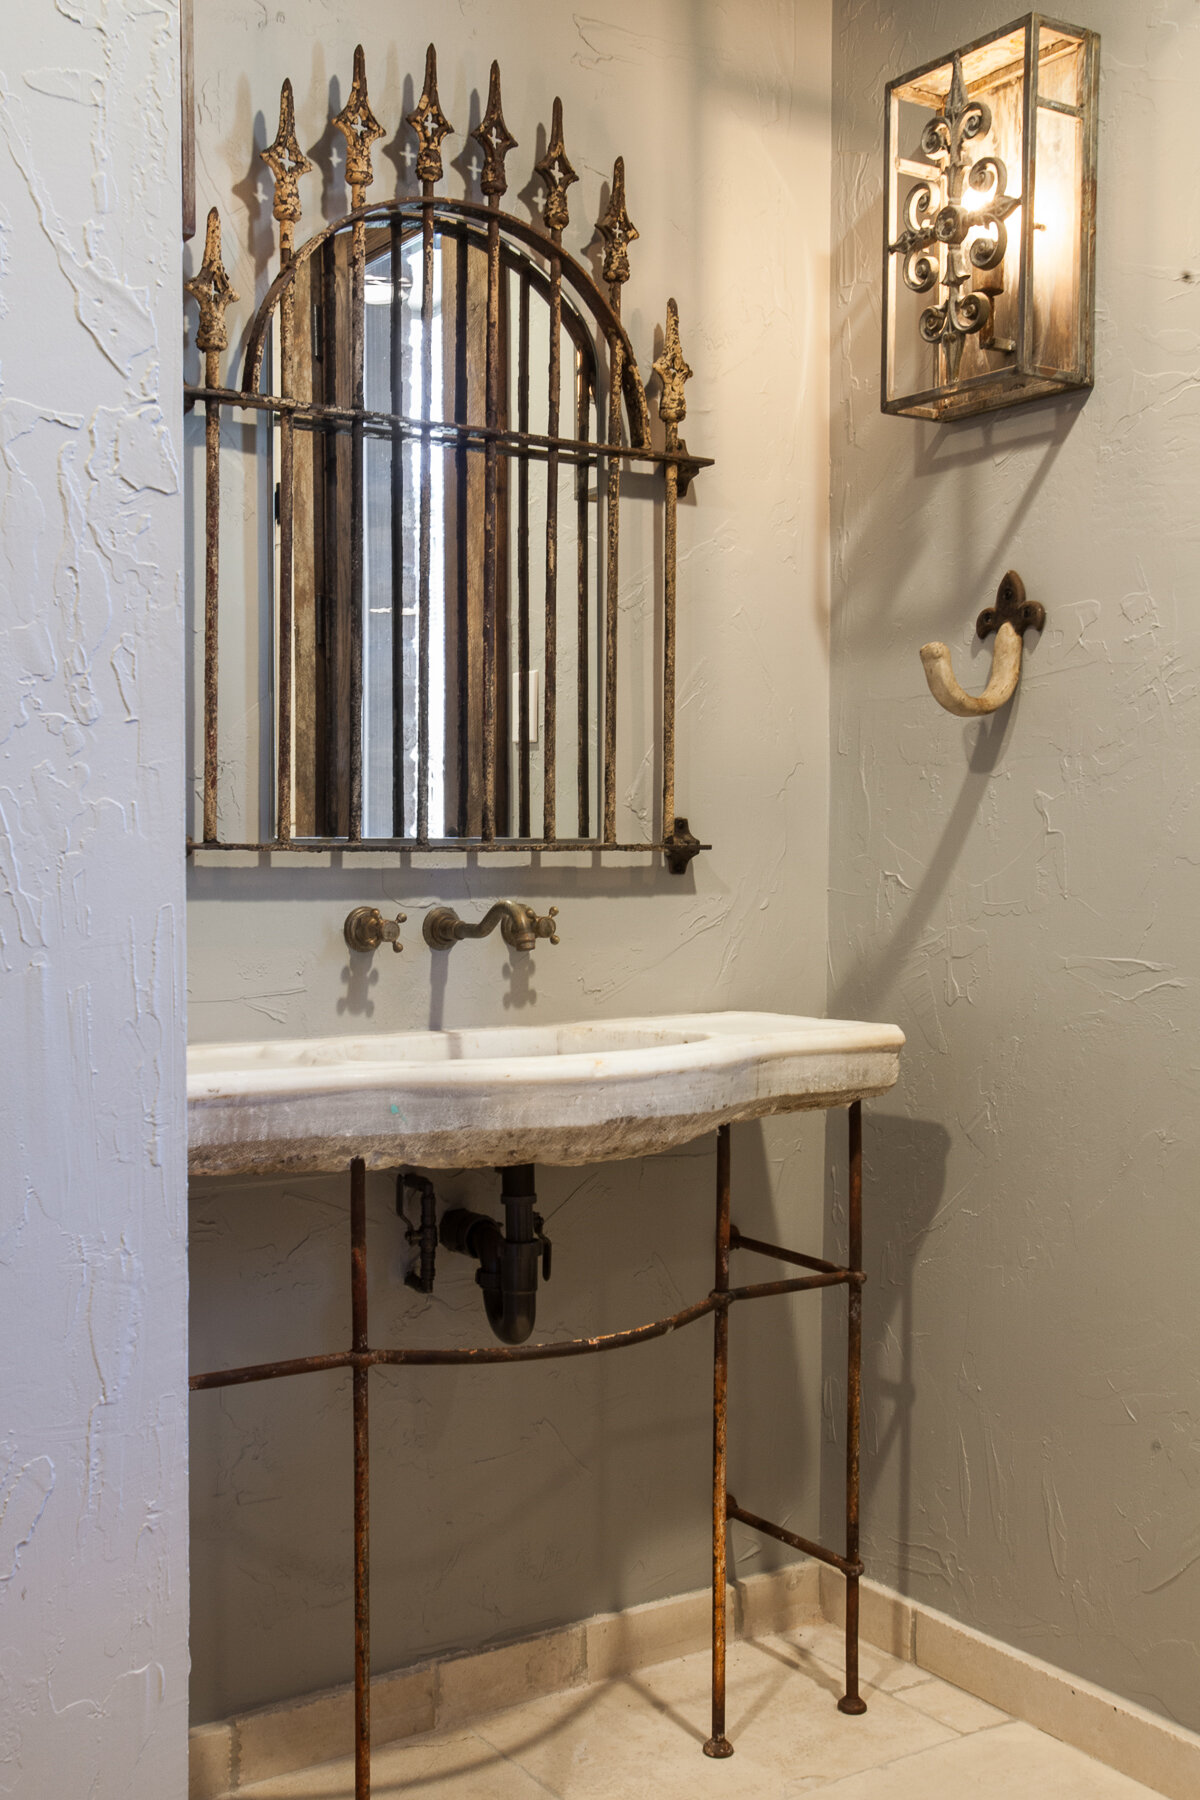 Design by  kaci lyford . Shop salvage sinks online at  east end salvage .